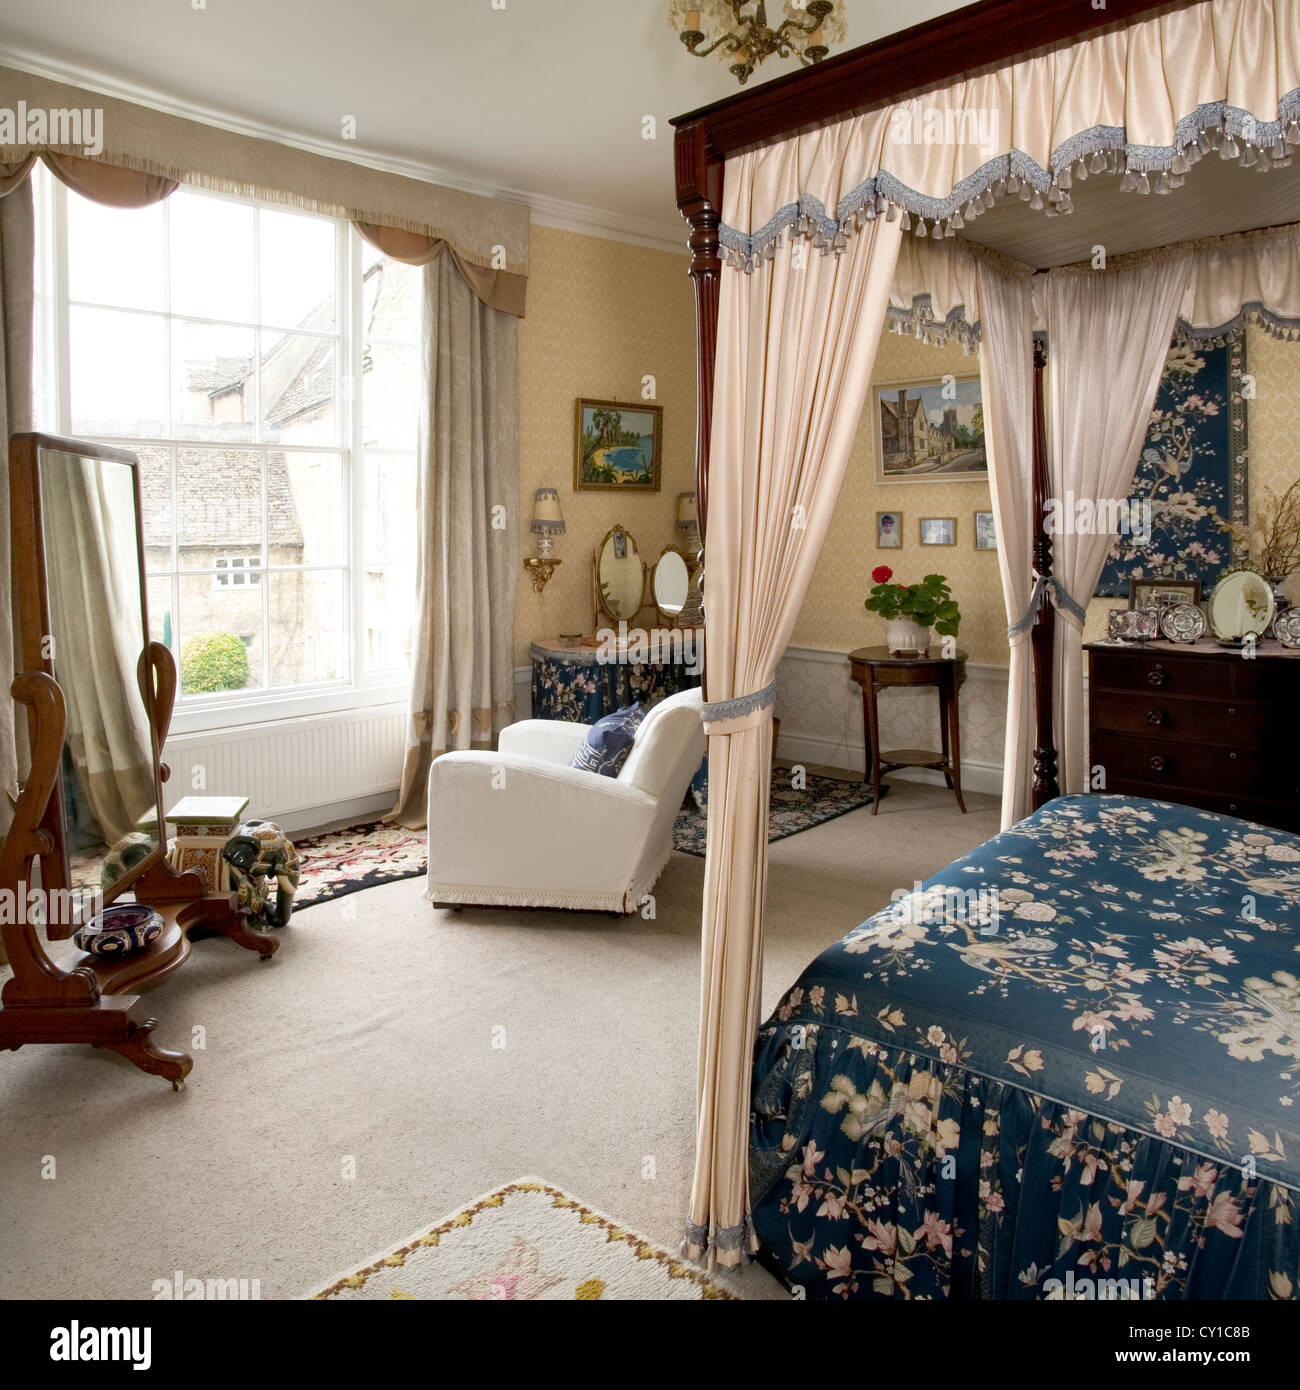 Large traditional style bedroom with a four poster bed. - Stock Image